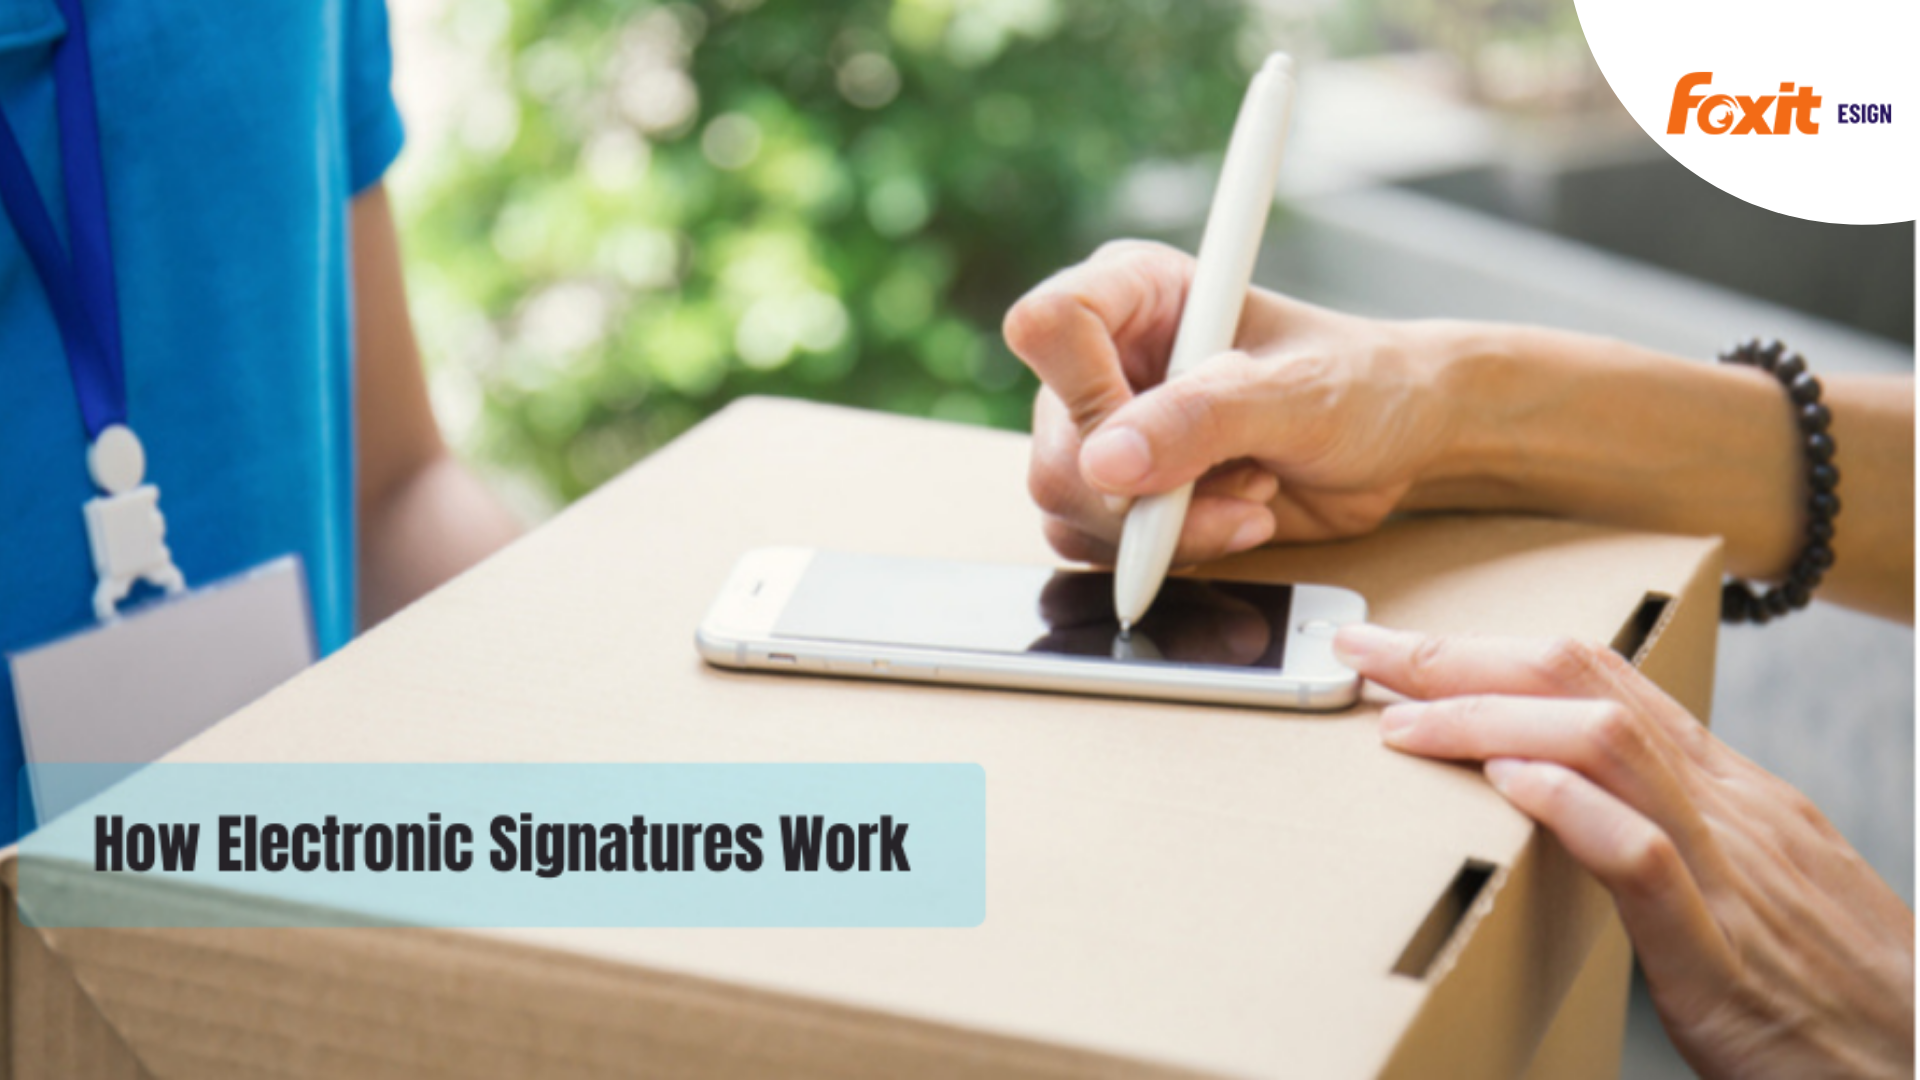 How Electronic Signatures Work